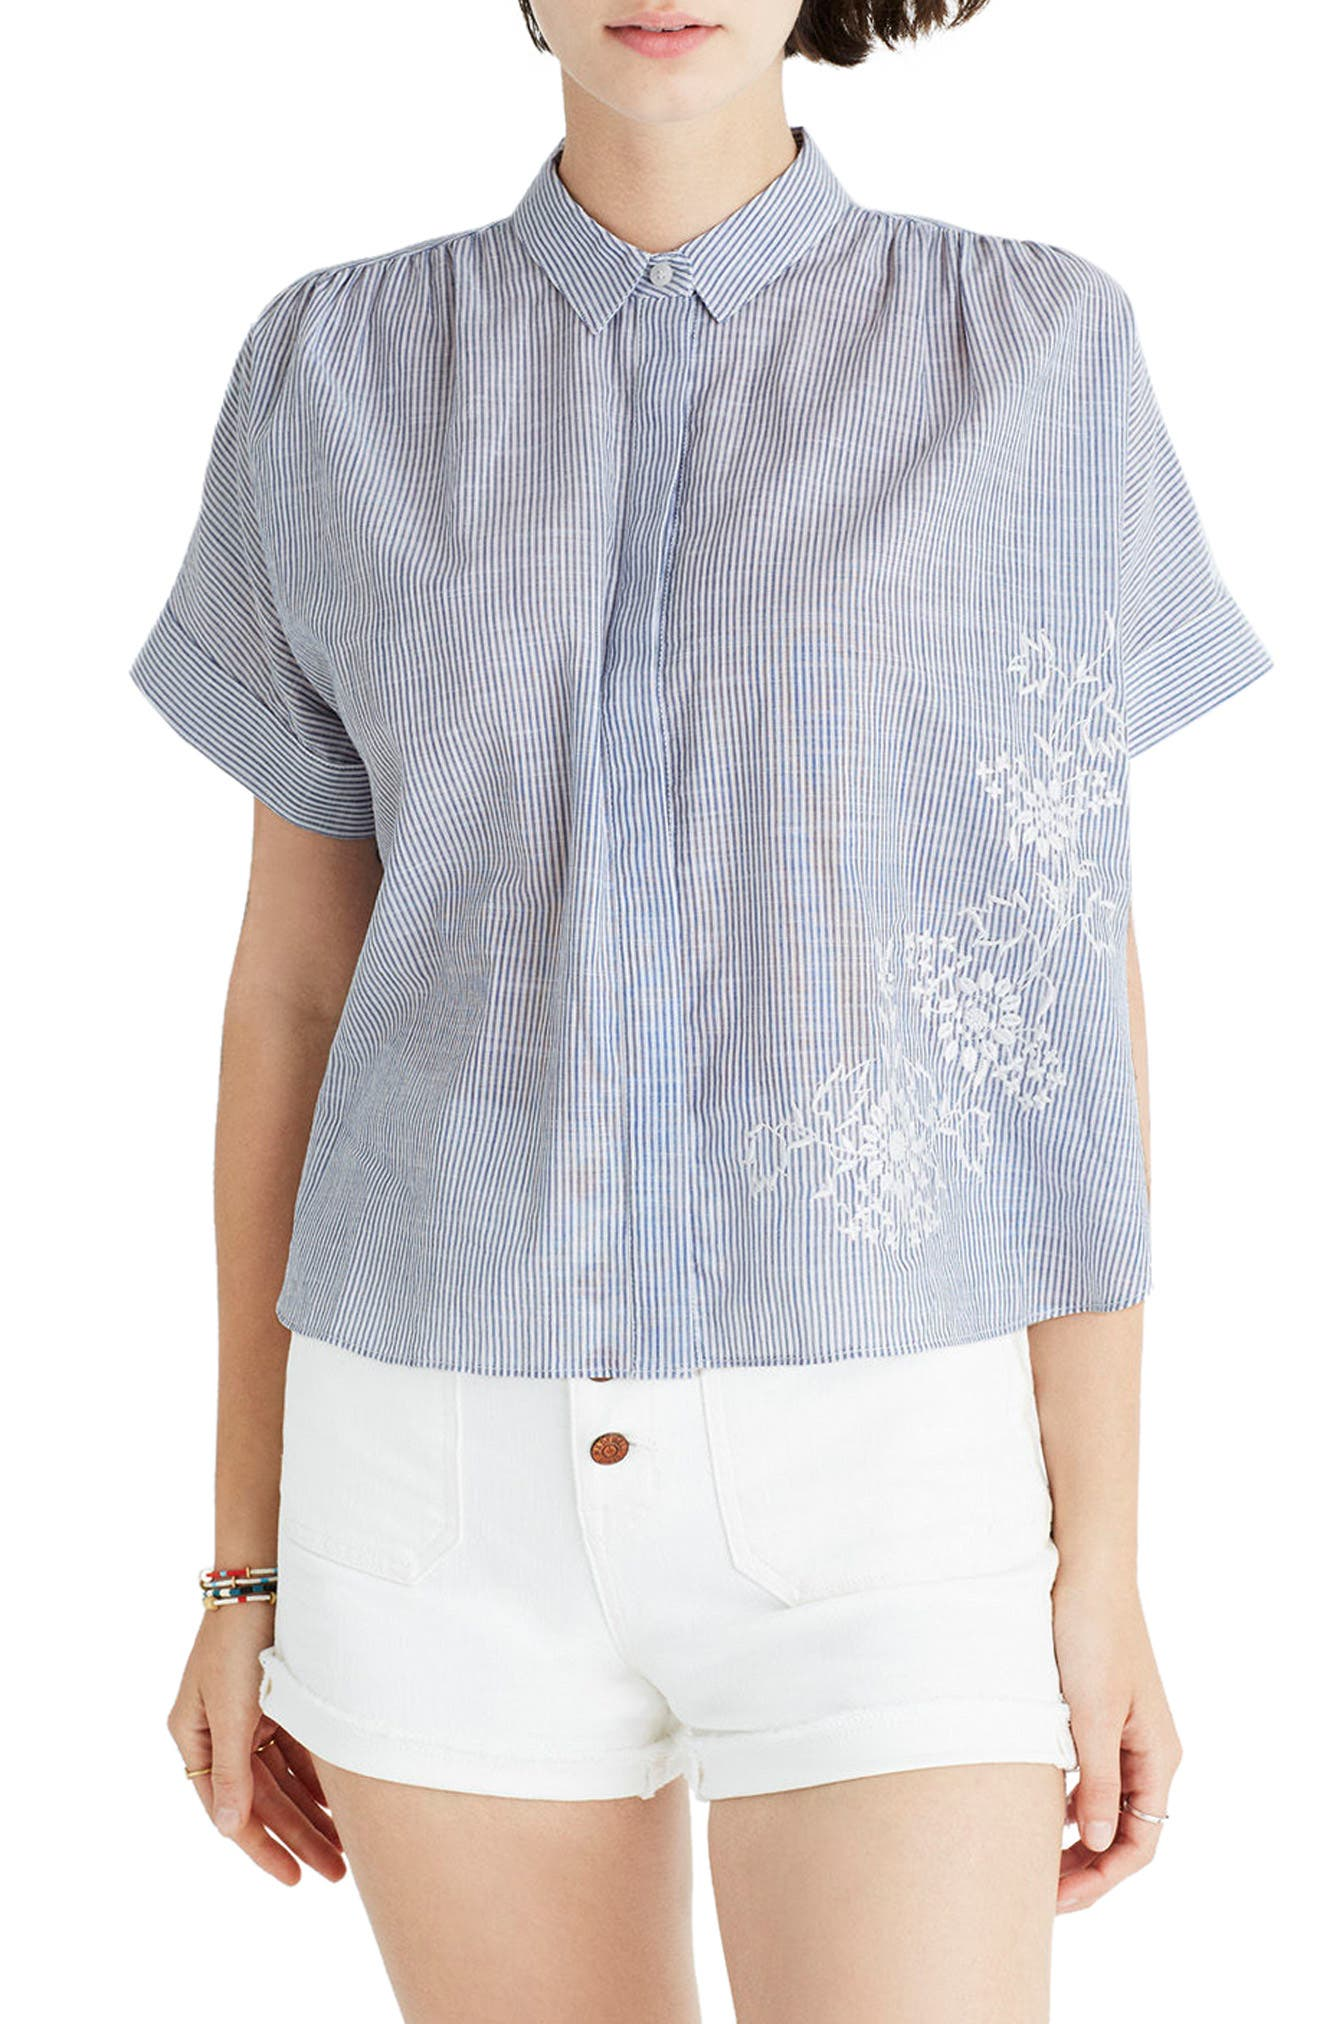 MADEWELL Embroidered Hilltop Shirt, Main, color, 400